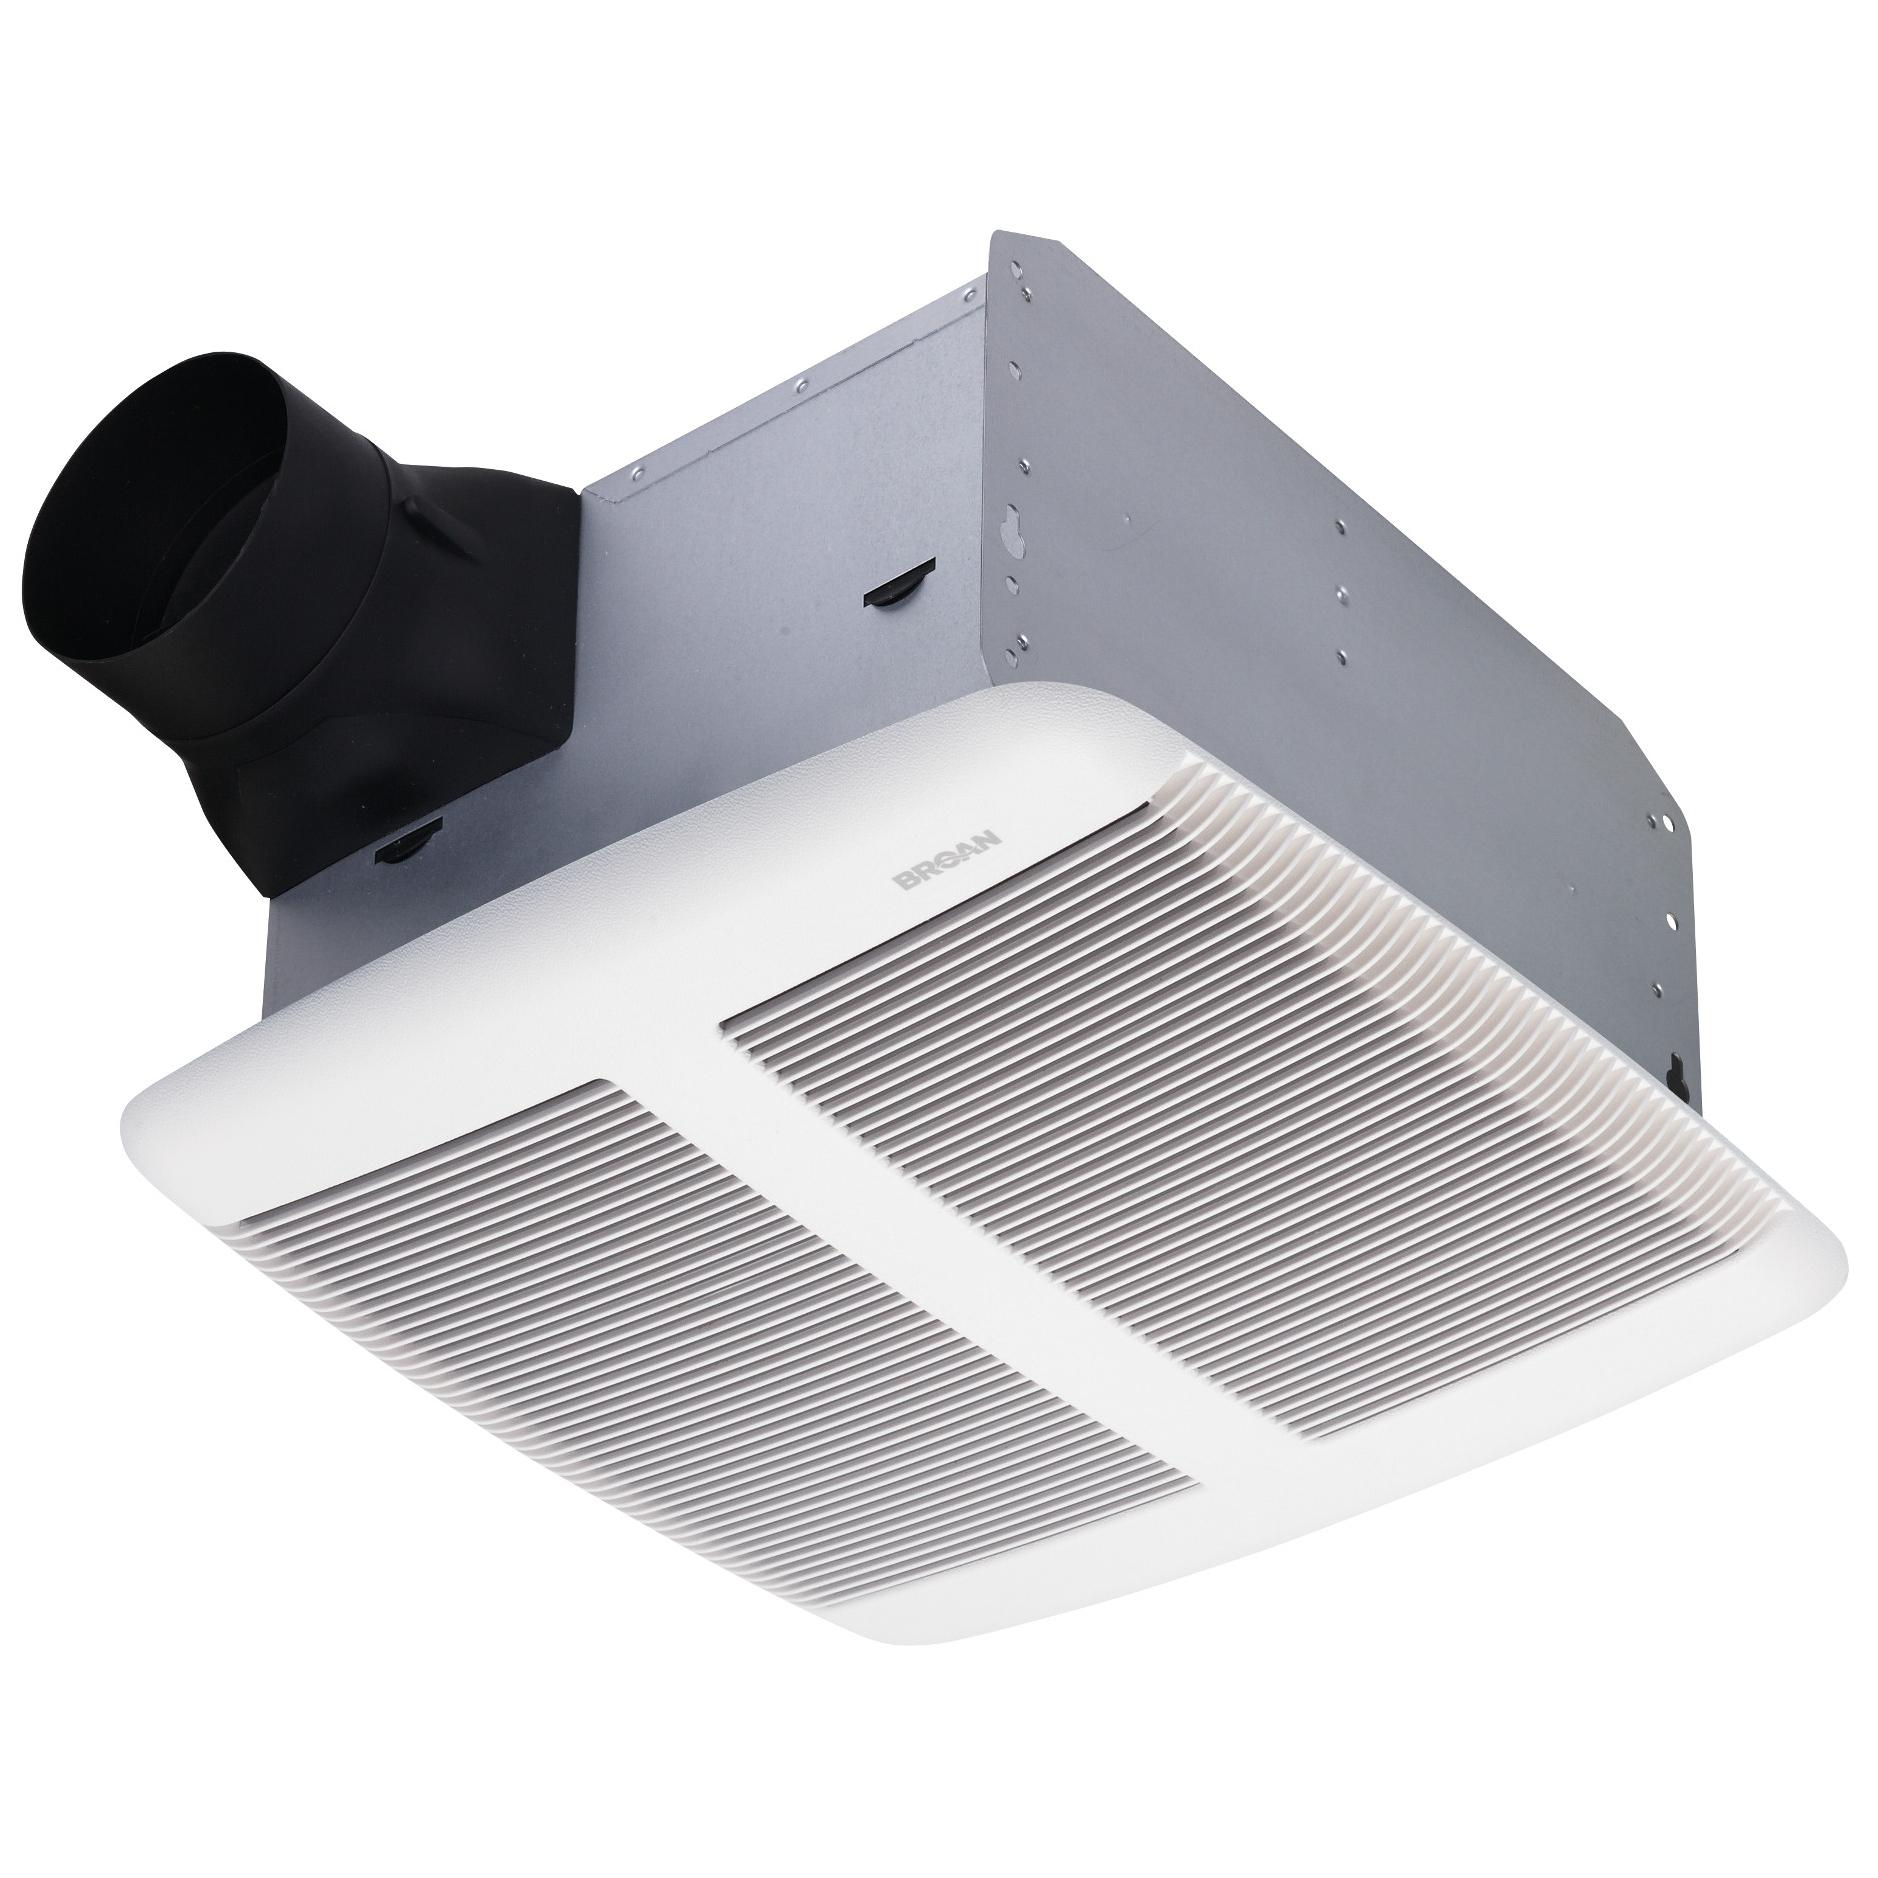 Bathroom Exhaust Fans : Broan qtre ultra silent bath fan sones cfm